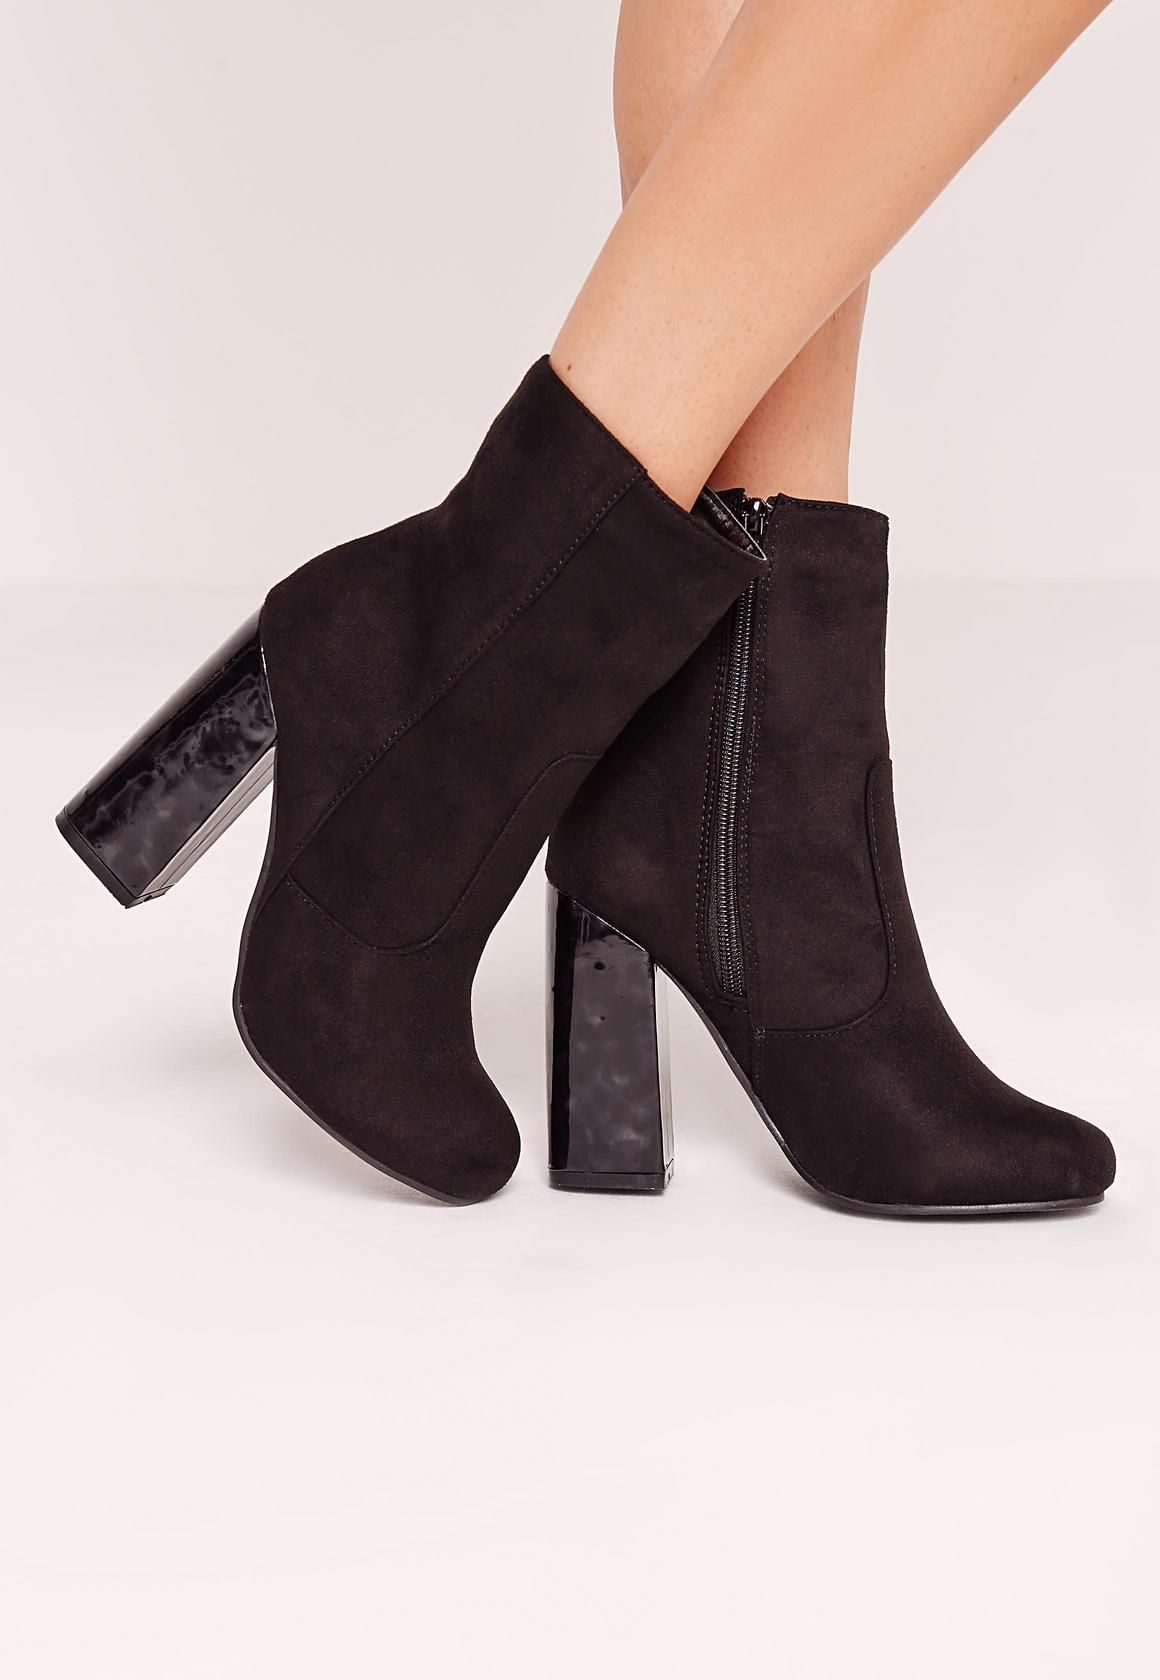 bottines noires talon carré écailles de tortue | missguided